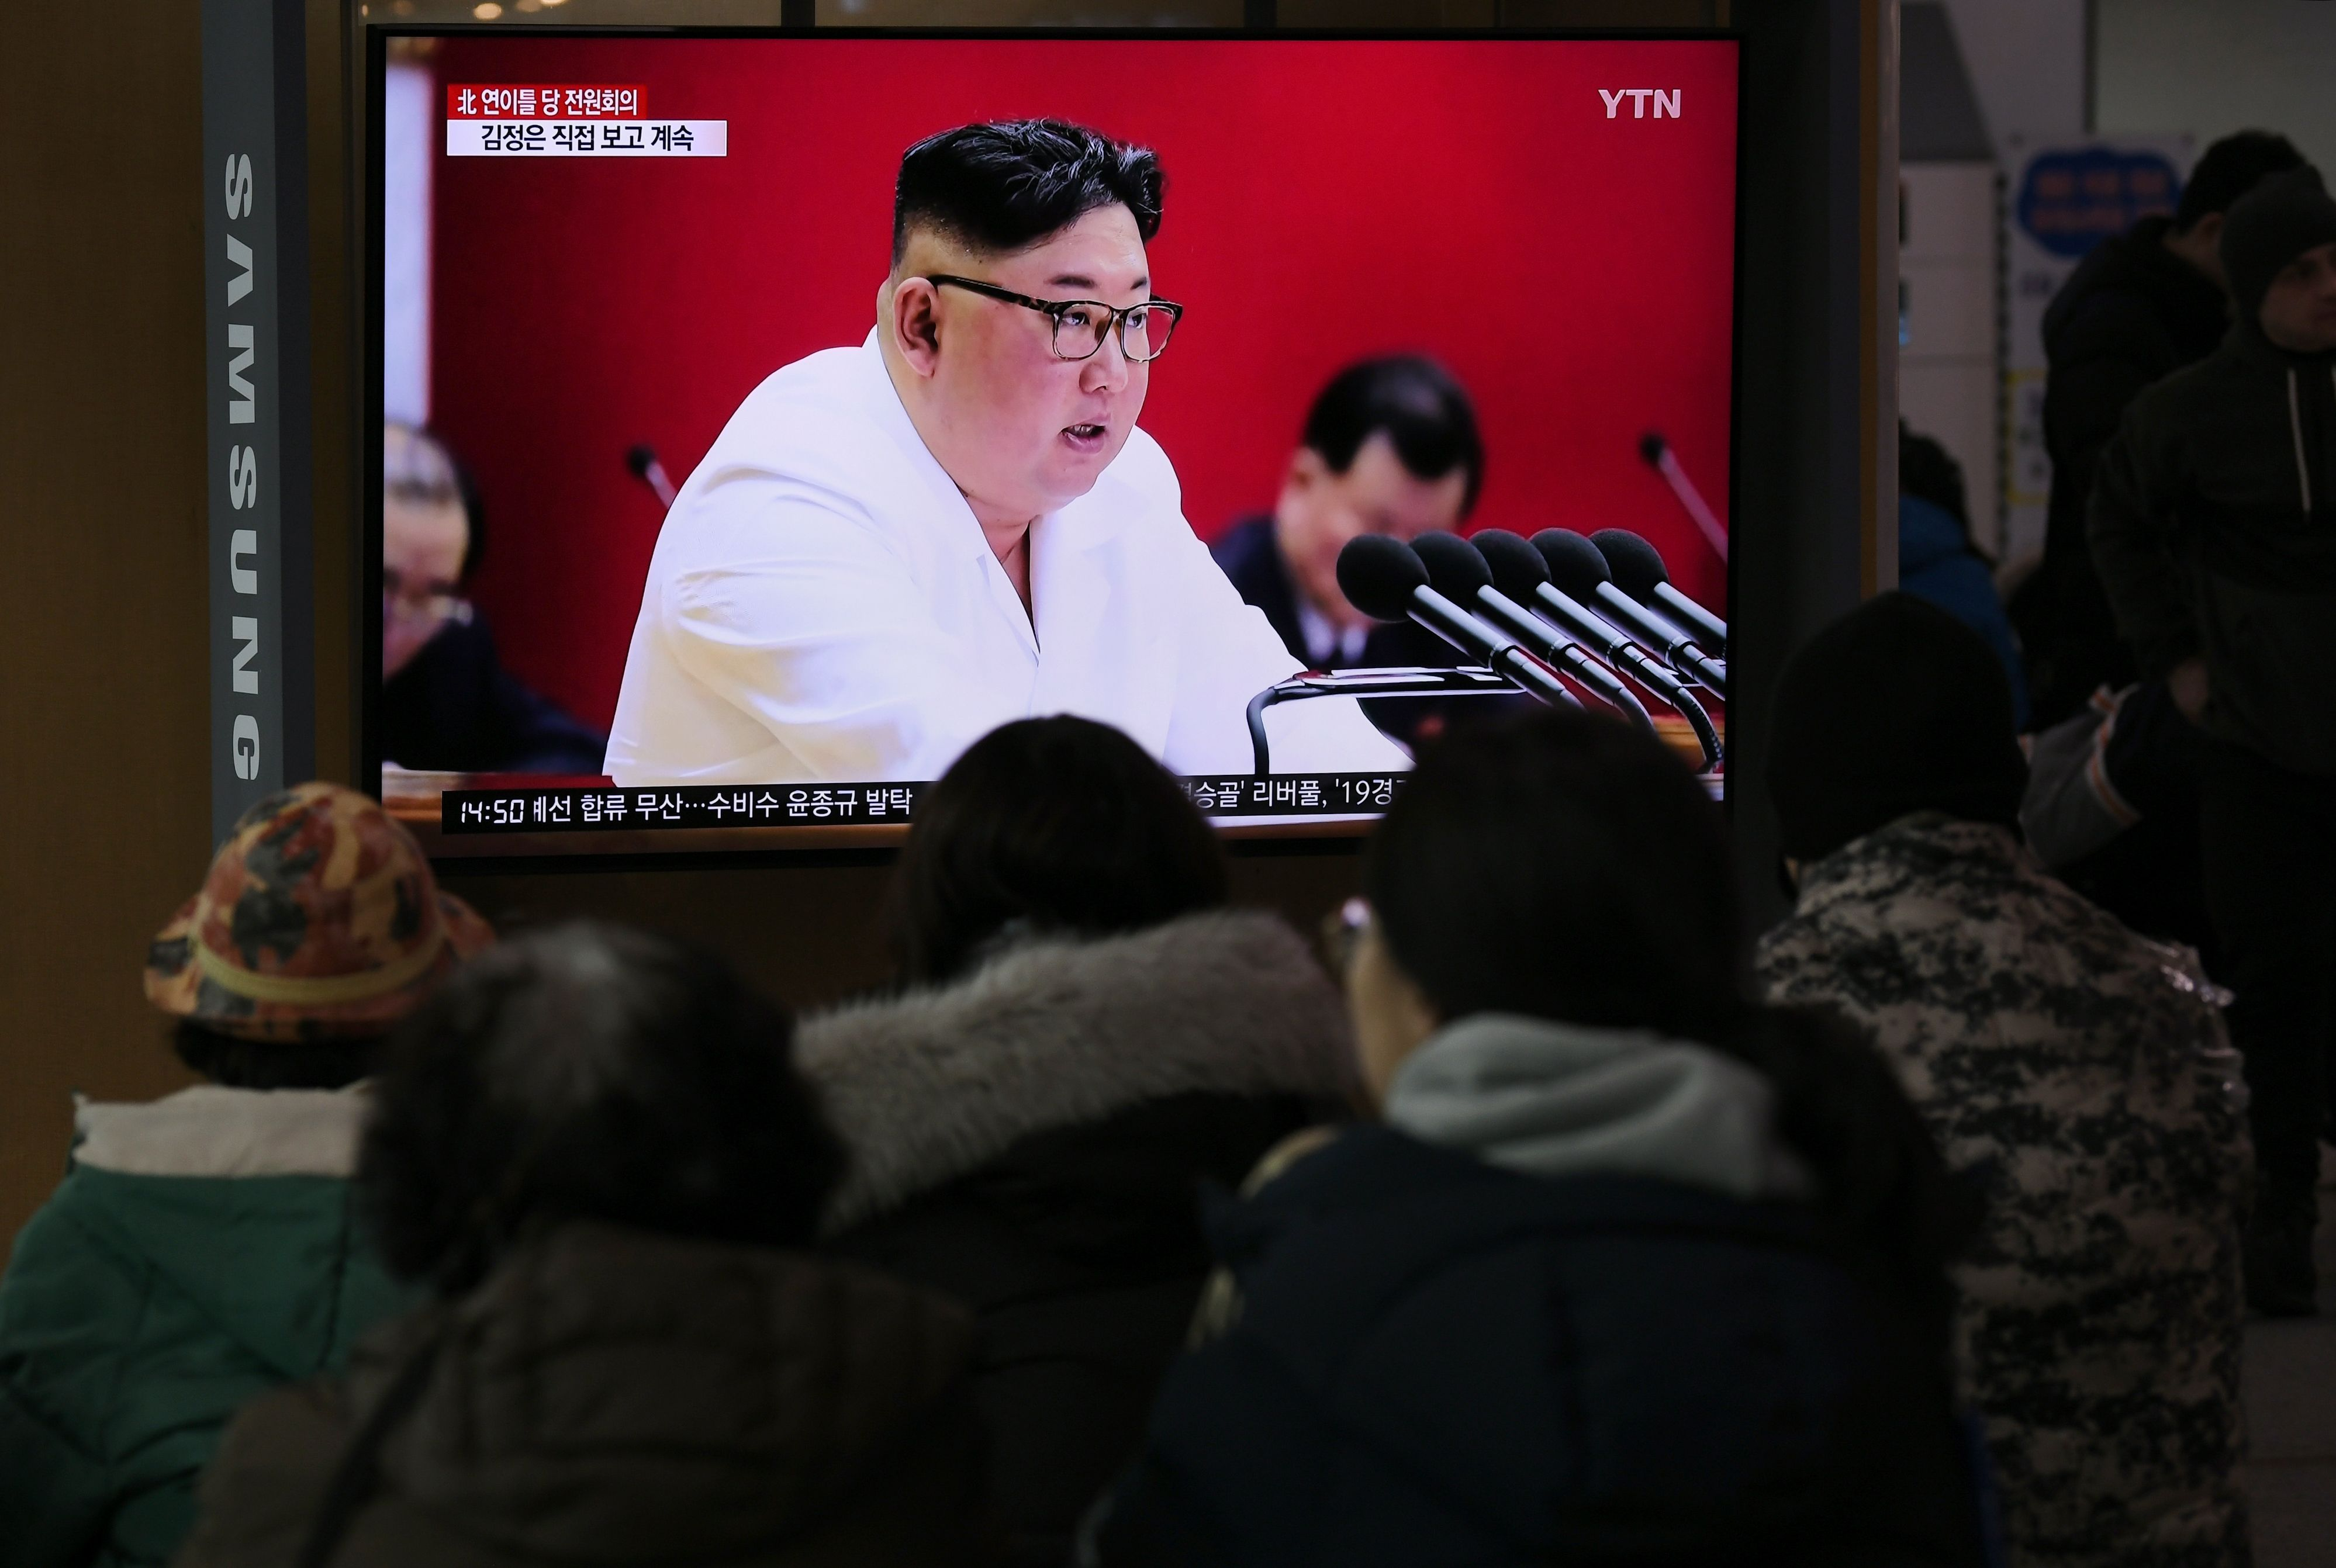 People watch a television news program showing  North Korean leader Kim Jong Un in Seoul on Dec. 30, 2019.